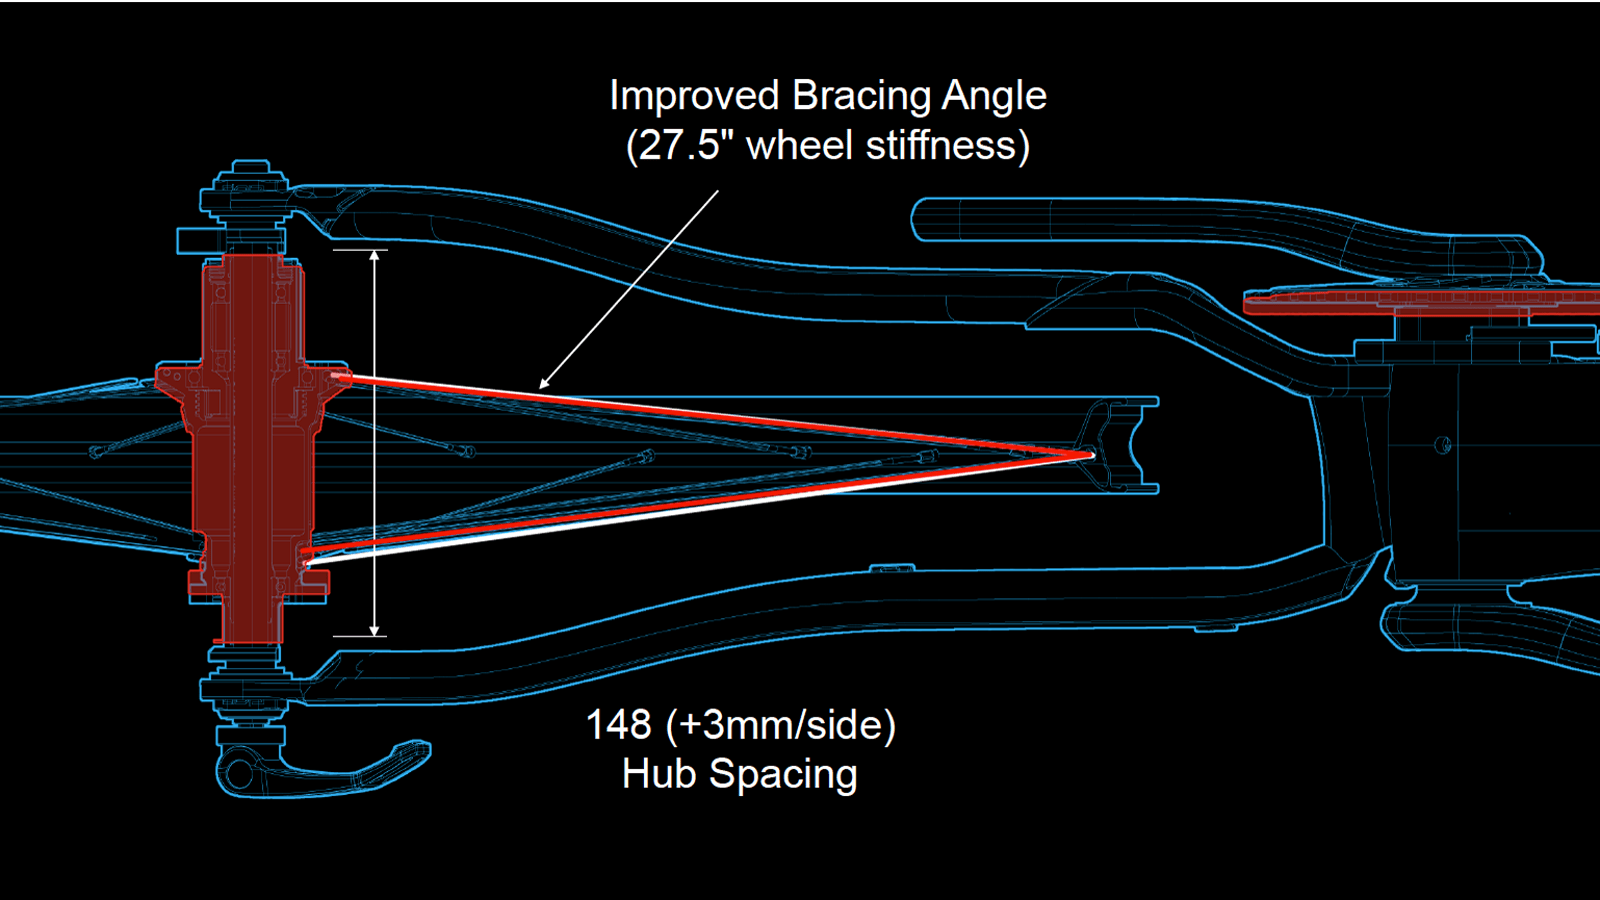 This CAD drawing shows the increased bracing angle of the spokes along with the outboard shift of the cassette and crankset (shown in blue)